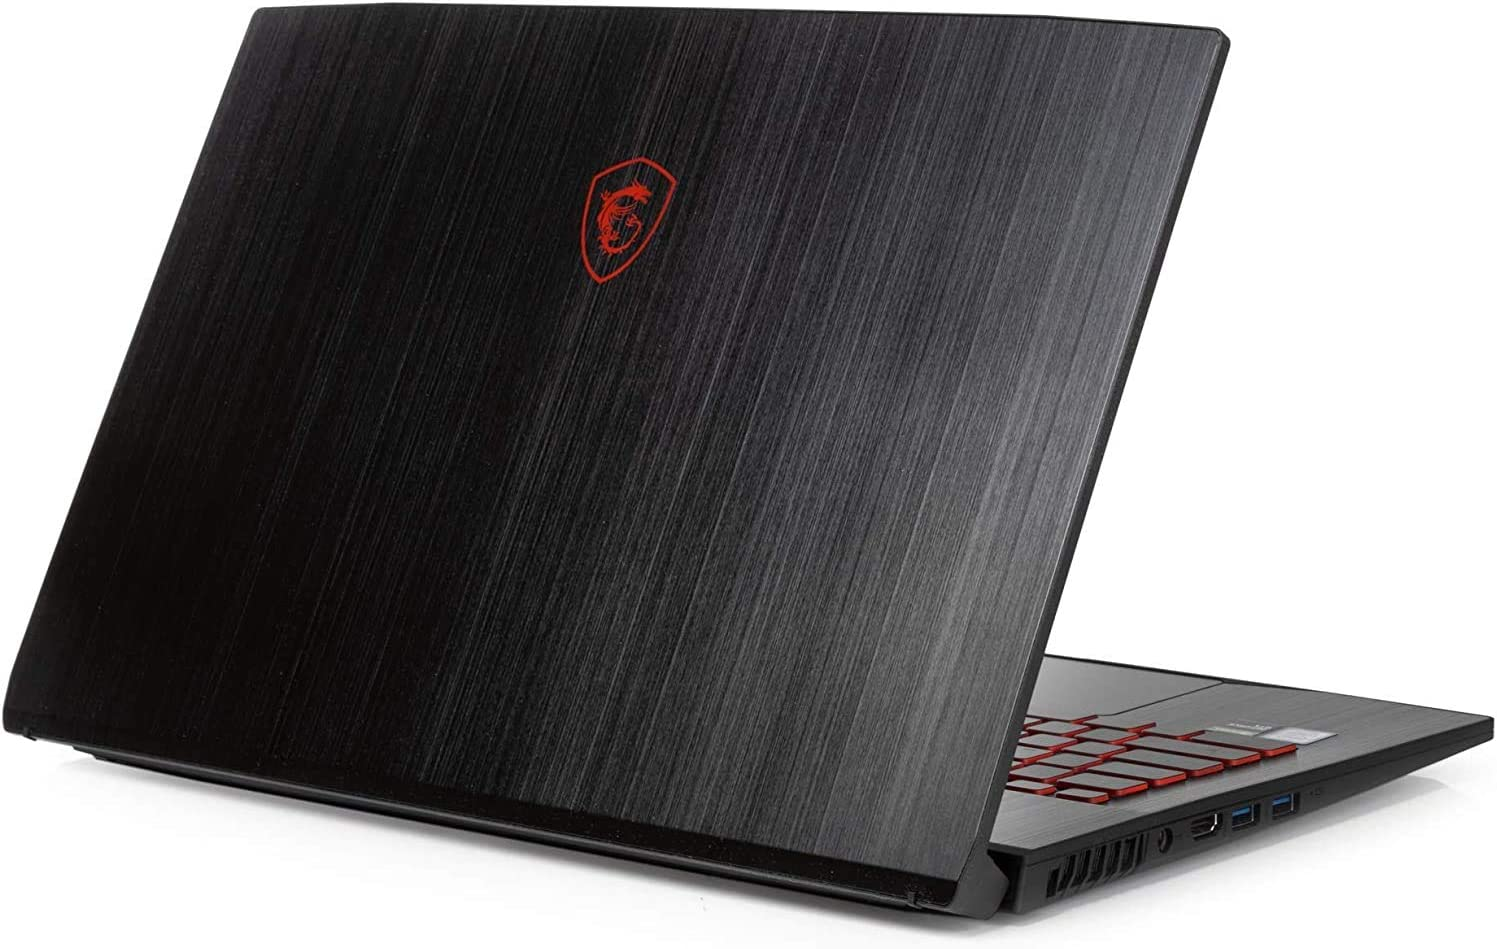 "MSI Thin GF75 Laptop, 17.3"" FHD Display, Intel Core i7-9750H Upto 4.5GHz, 32GB RAM, 1TB NVMe SSD + 1TB HDD, NVIDIA GeForce GTX 1050 Ti, HDMI, Wi-Fi, Bluetooth, Windows 10 Pro (Renewed)"